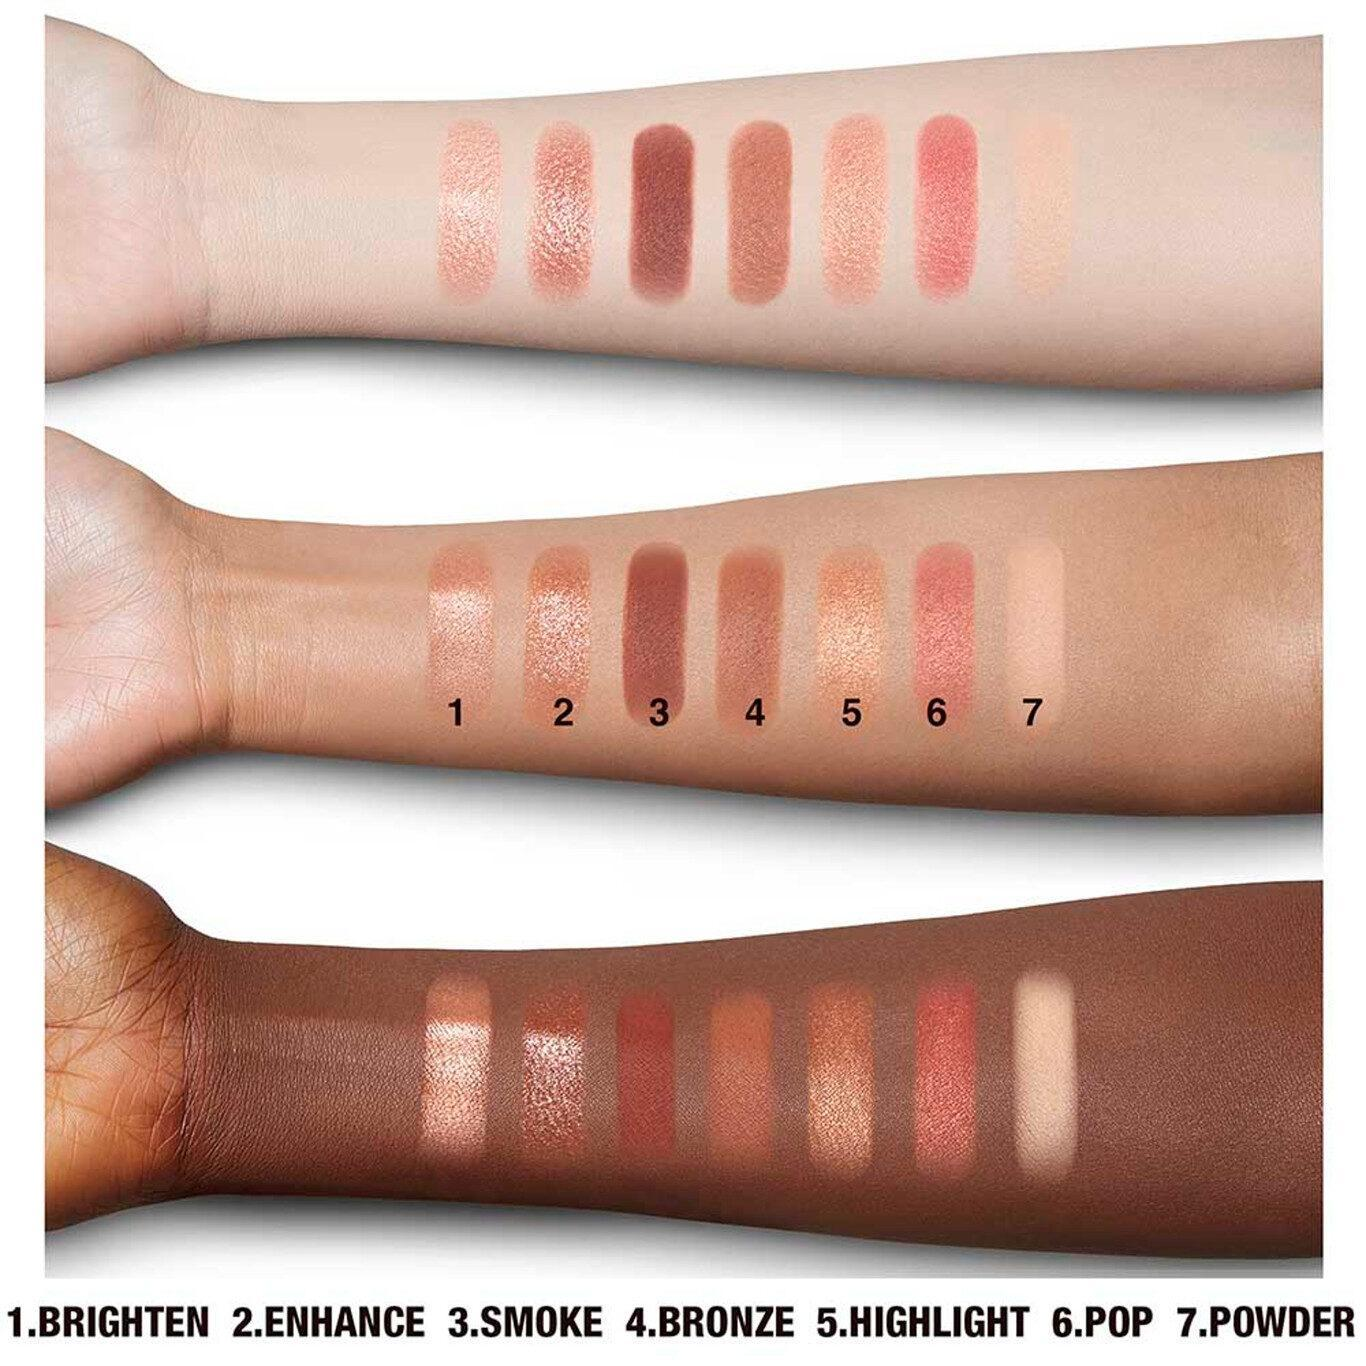 Look Of Love Instant Look In A Palette Glowing Beauty Arm Swatches